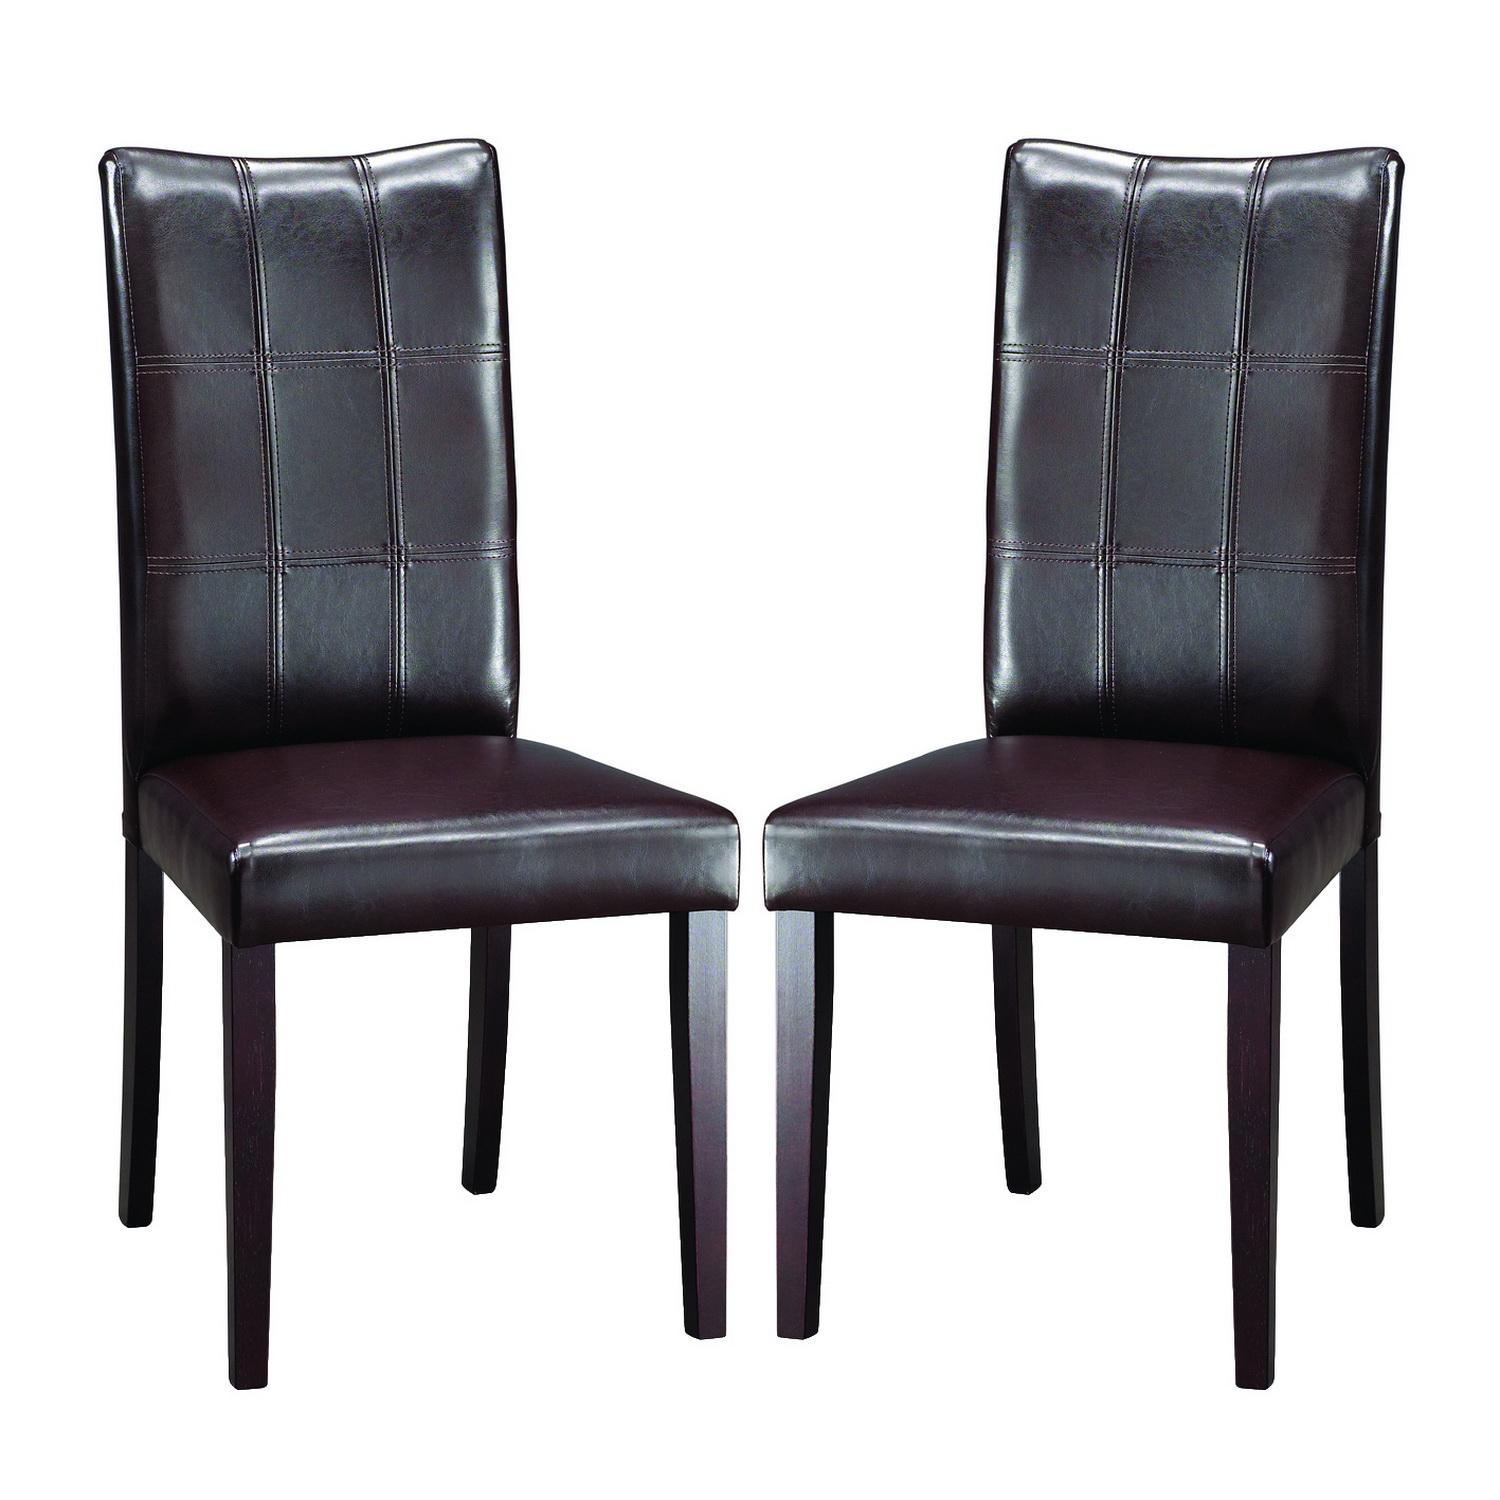 overstock com chairs office chair jamaica eugene dark brown modern dining set of 2 free